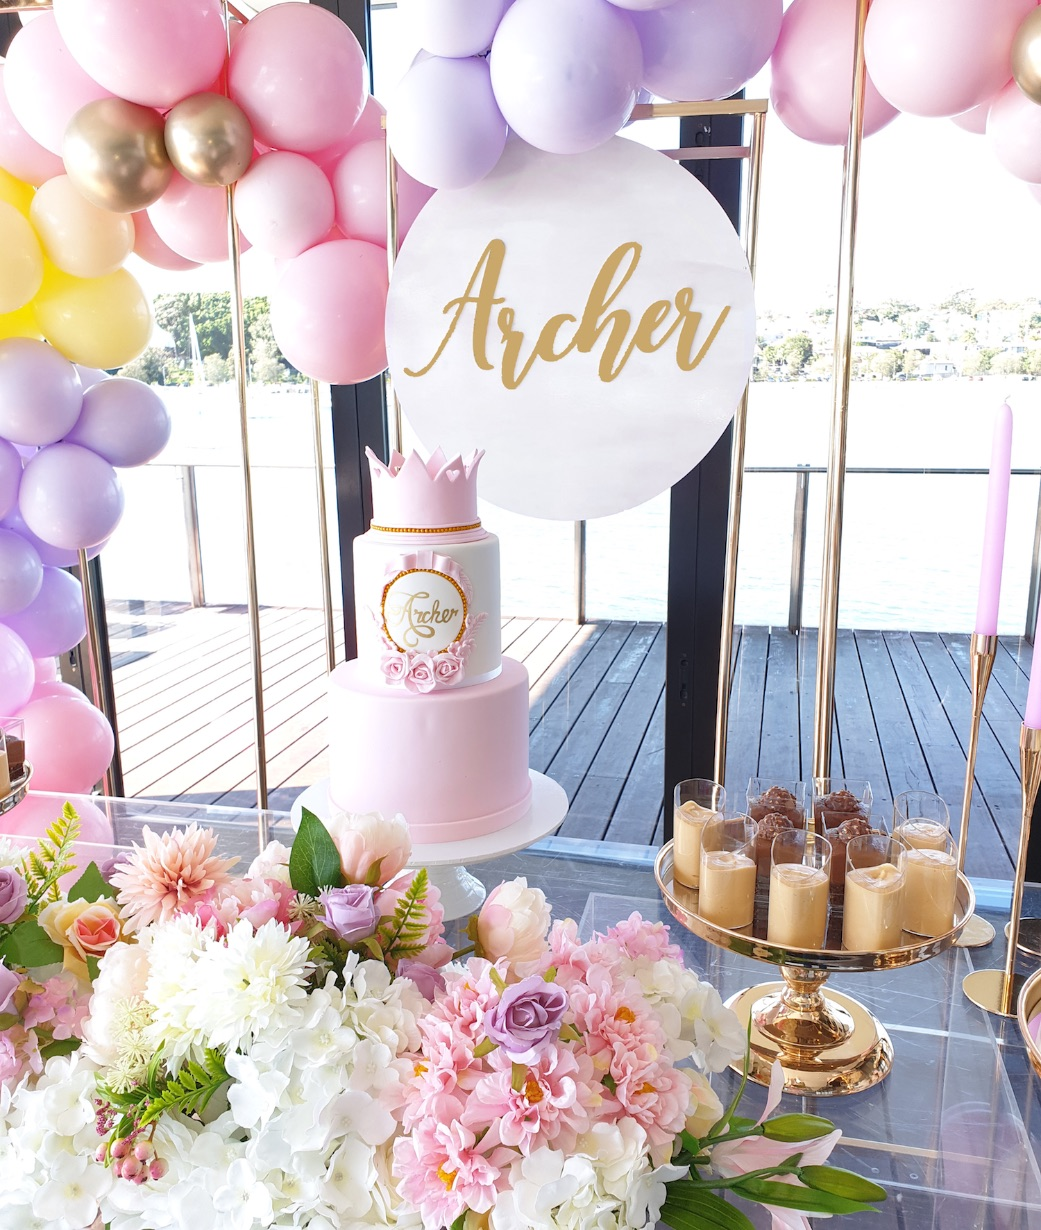 , Archer's pastel and gold christening